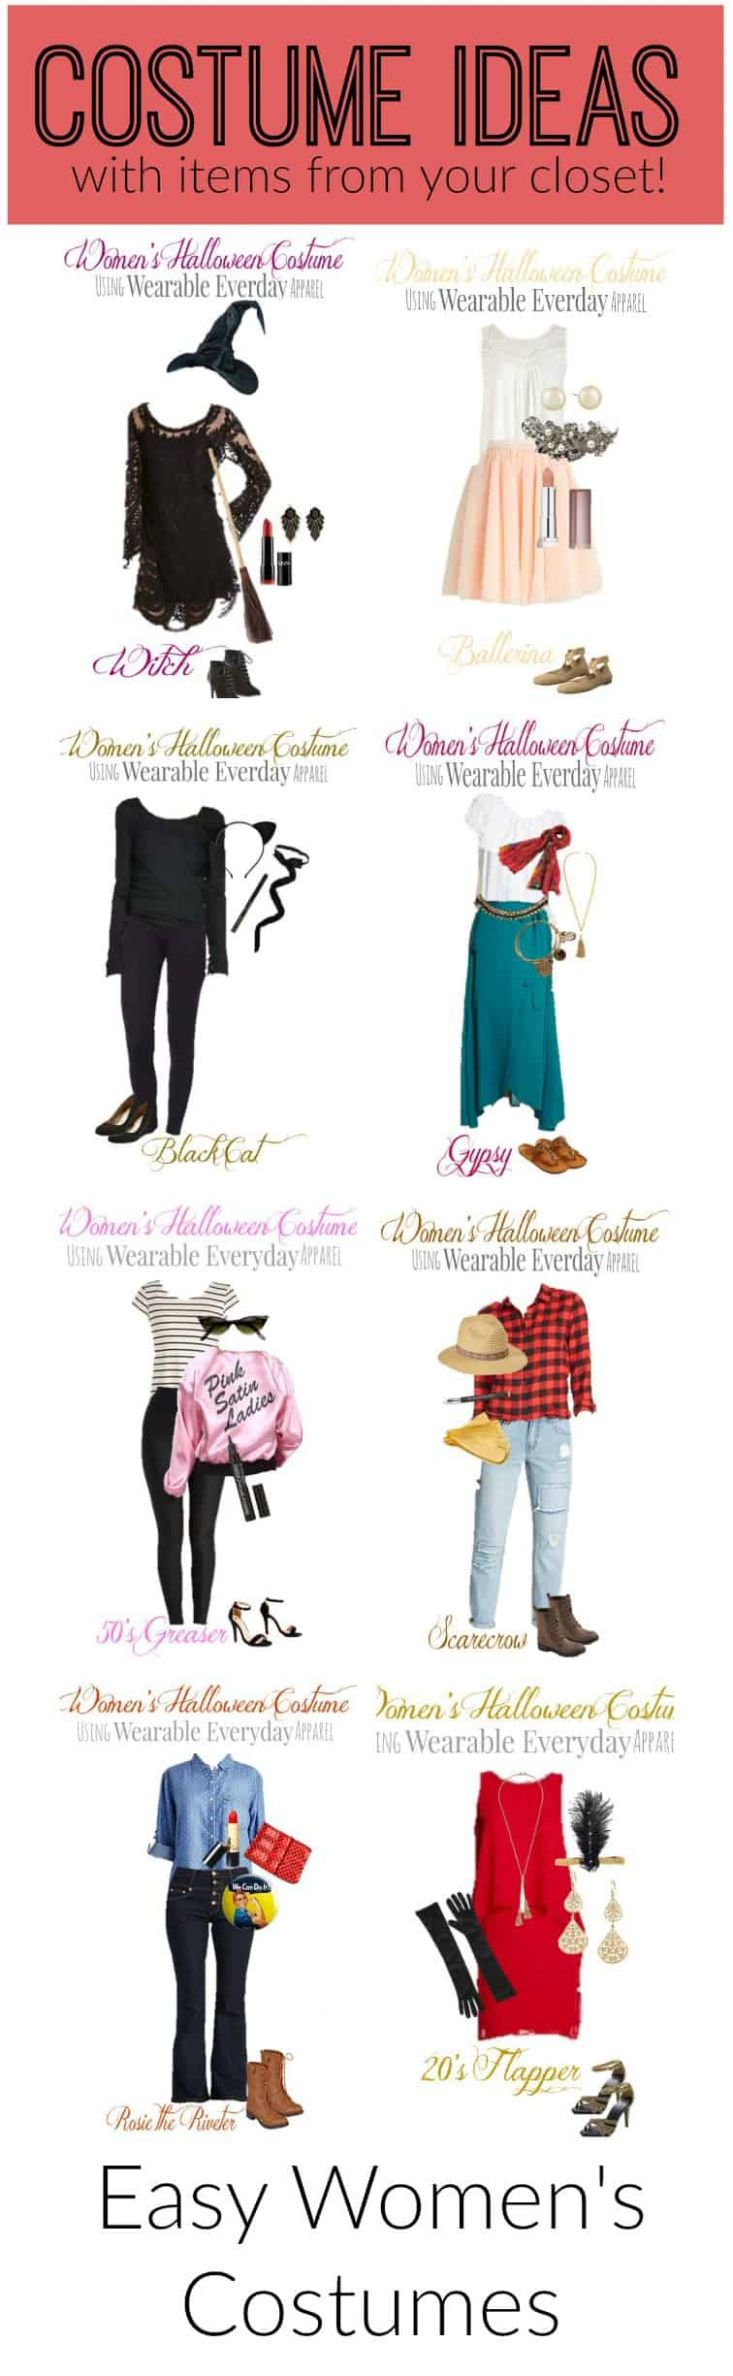 Costume-Ideas-with-Items-from-your-closet - closet costume ideas